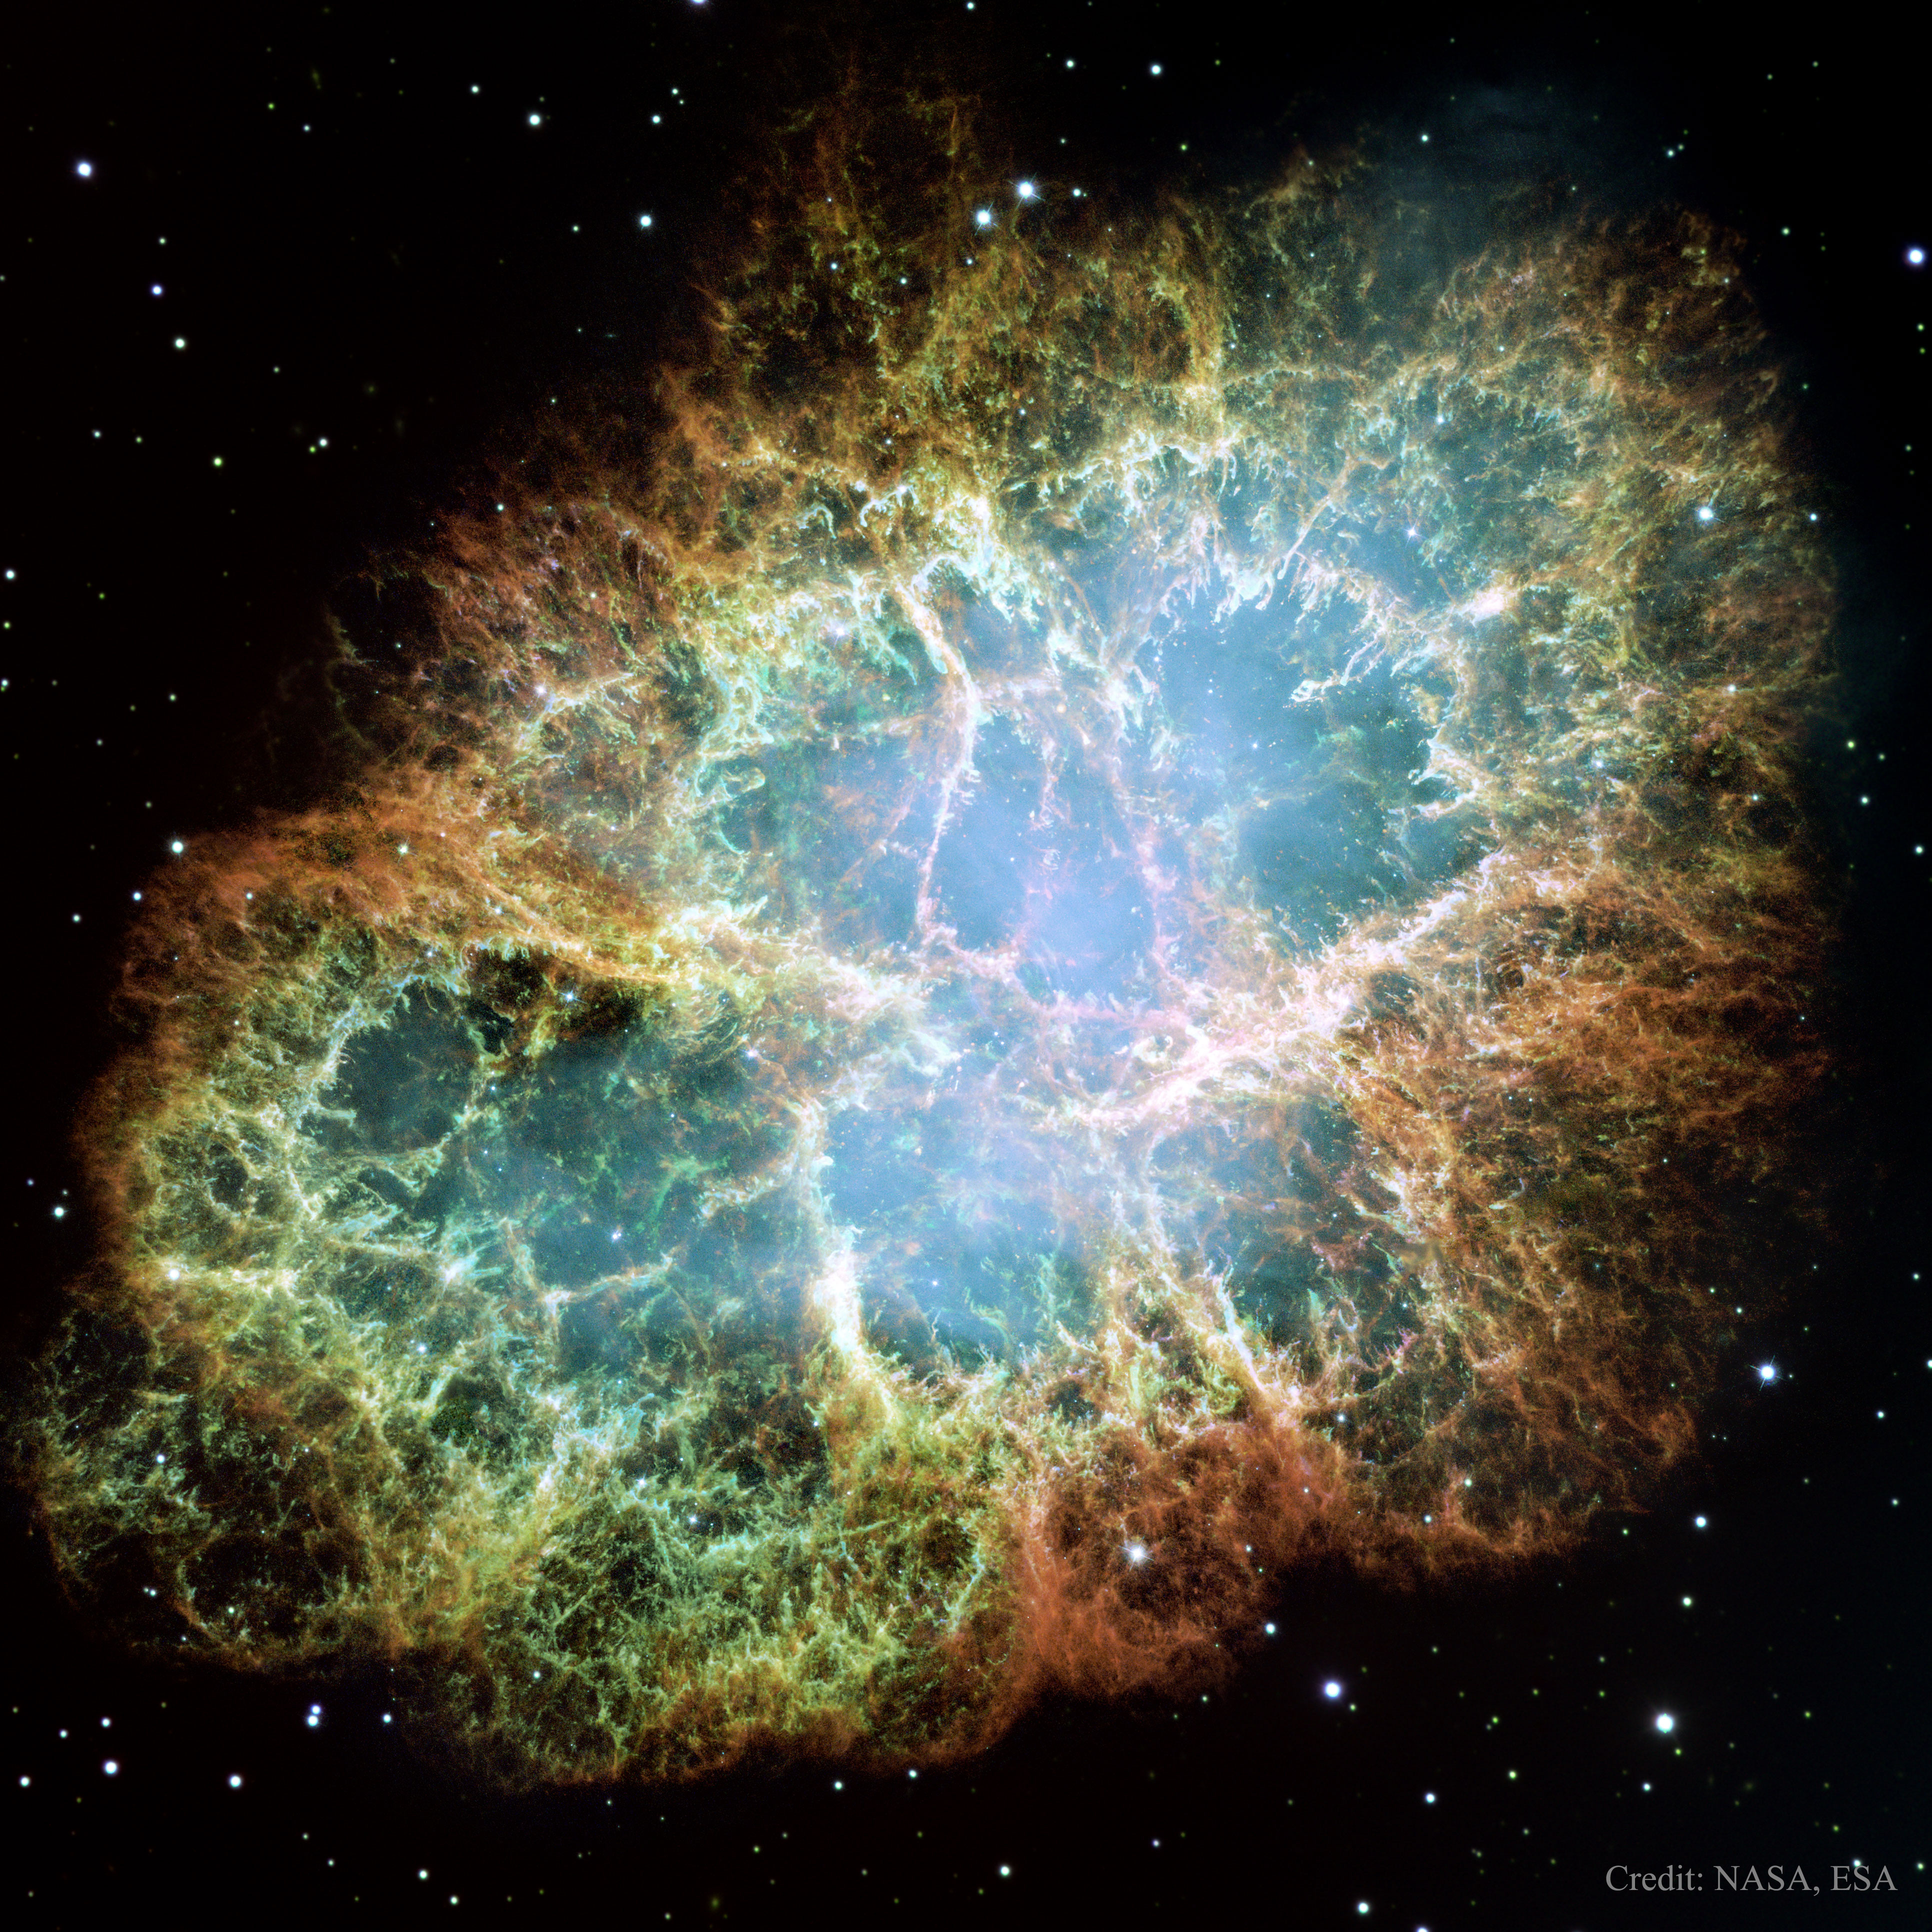 APOD: 2015 August 16 - M1: The Crab Nebula from Hubble